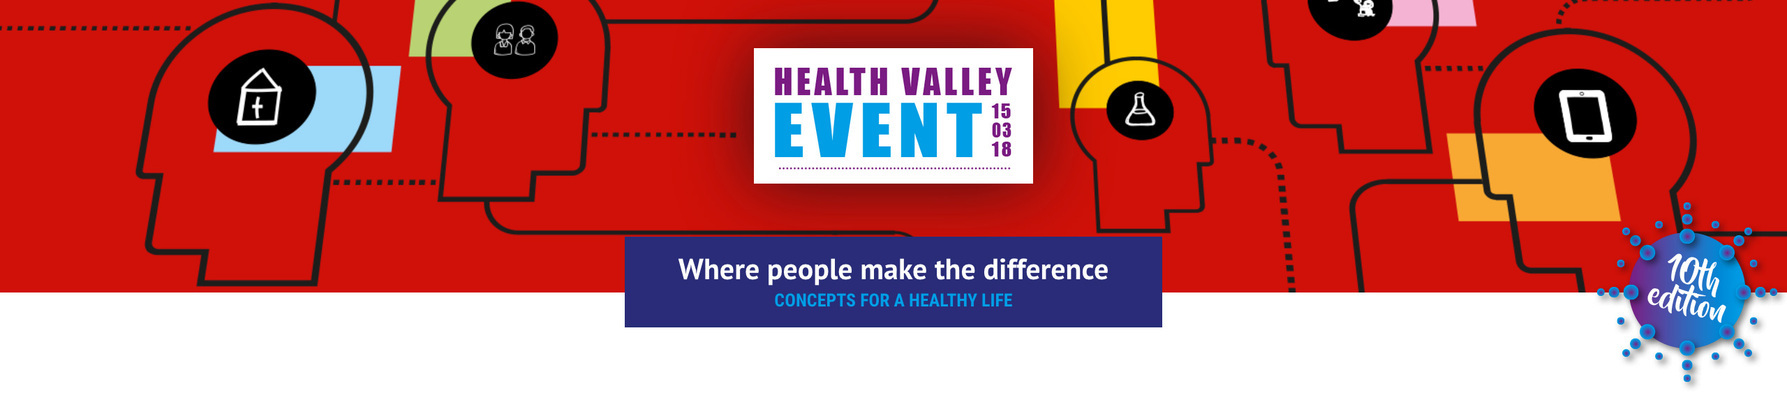 Health Valley Event 2018